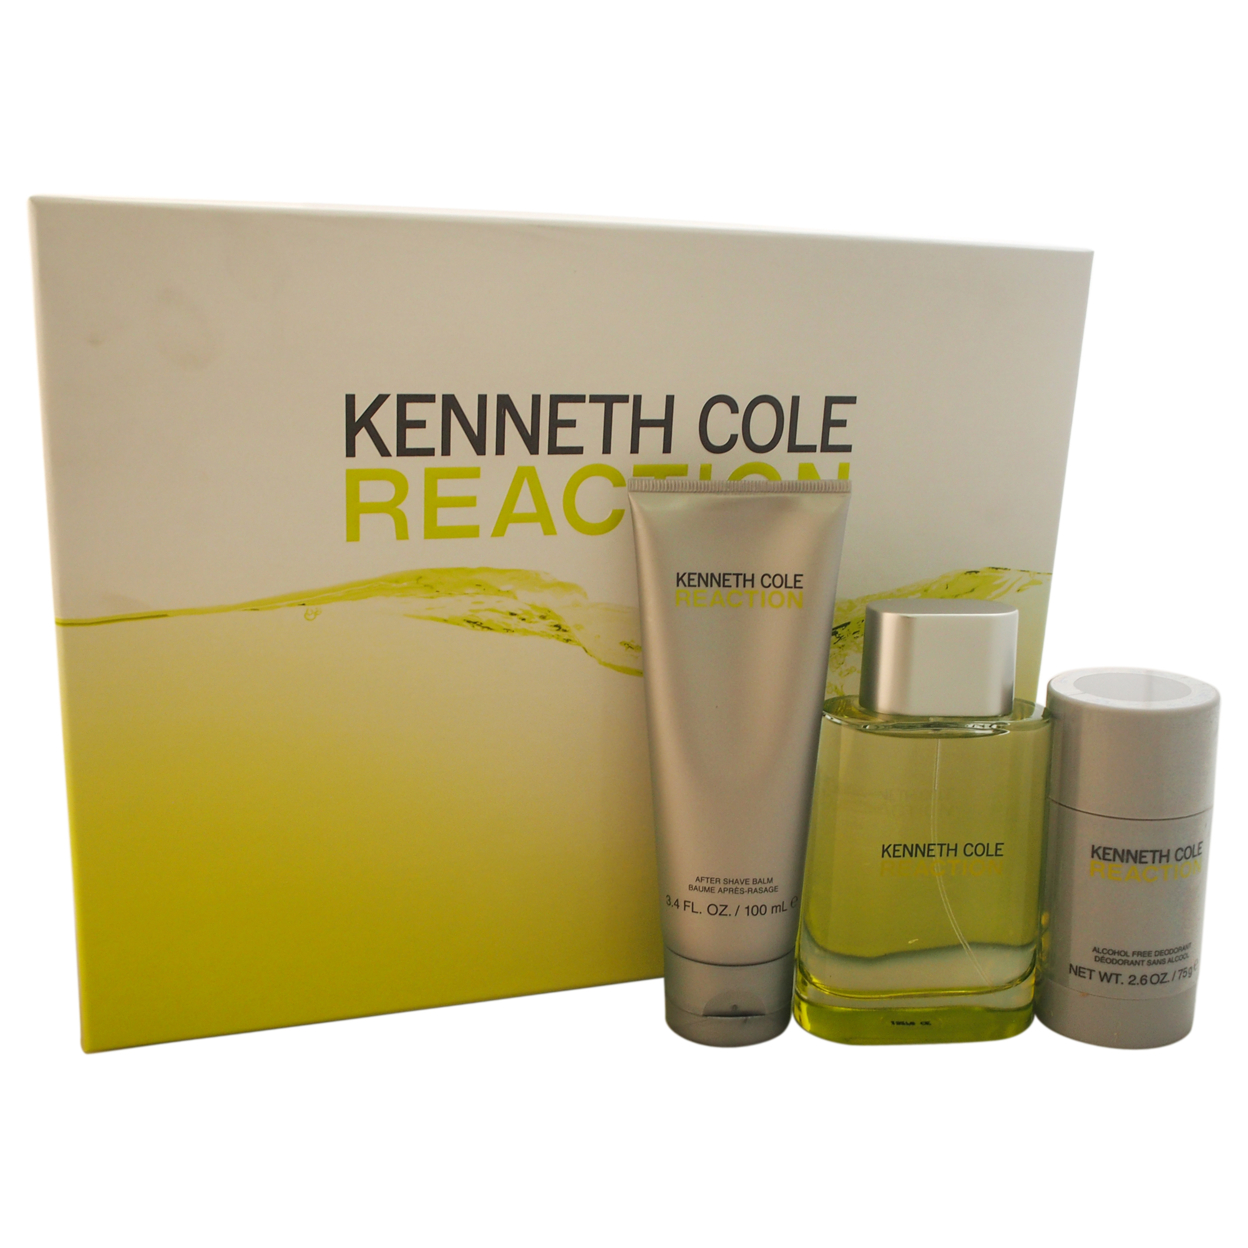 Kenneth Cole Reaction by Kenneth Cole for Men - 3 Pc Gift Set 3.4oz EDT Spray, 3.4oz After Shave Balm, 2.6oz Deodorant Stick kenneth cole reaction women s beauty in belize skirted bikini bottom